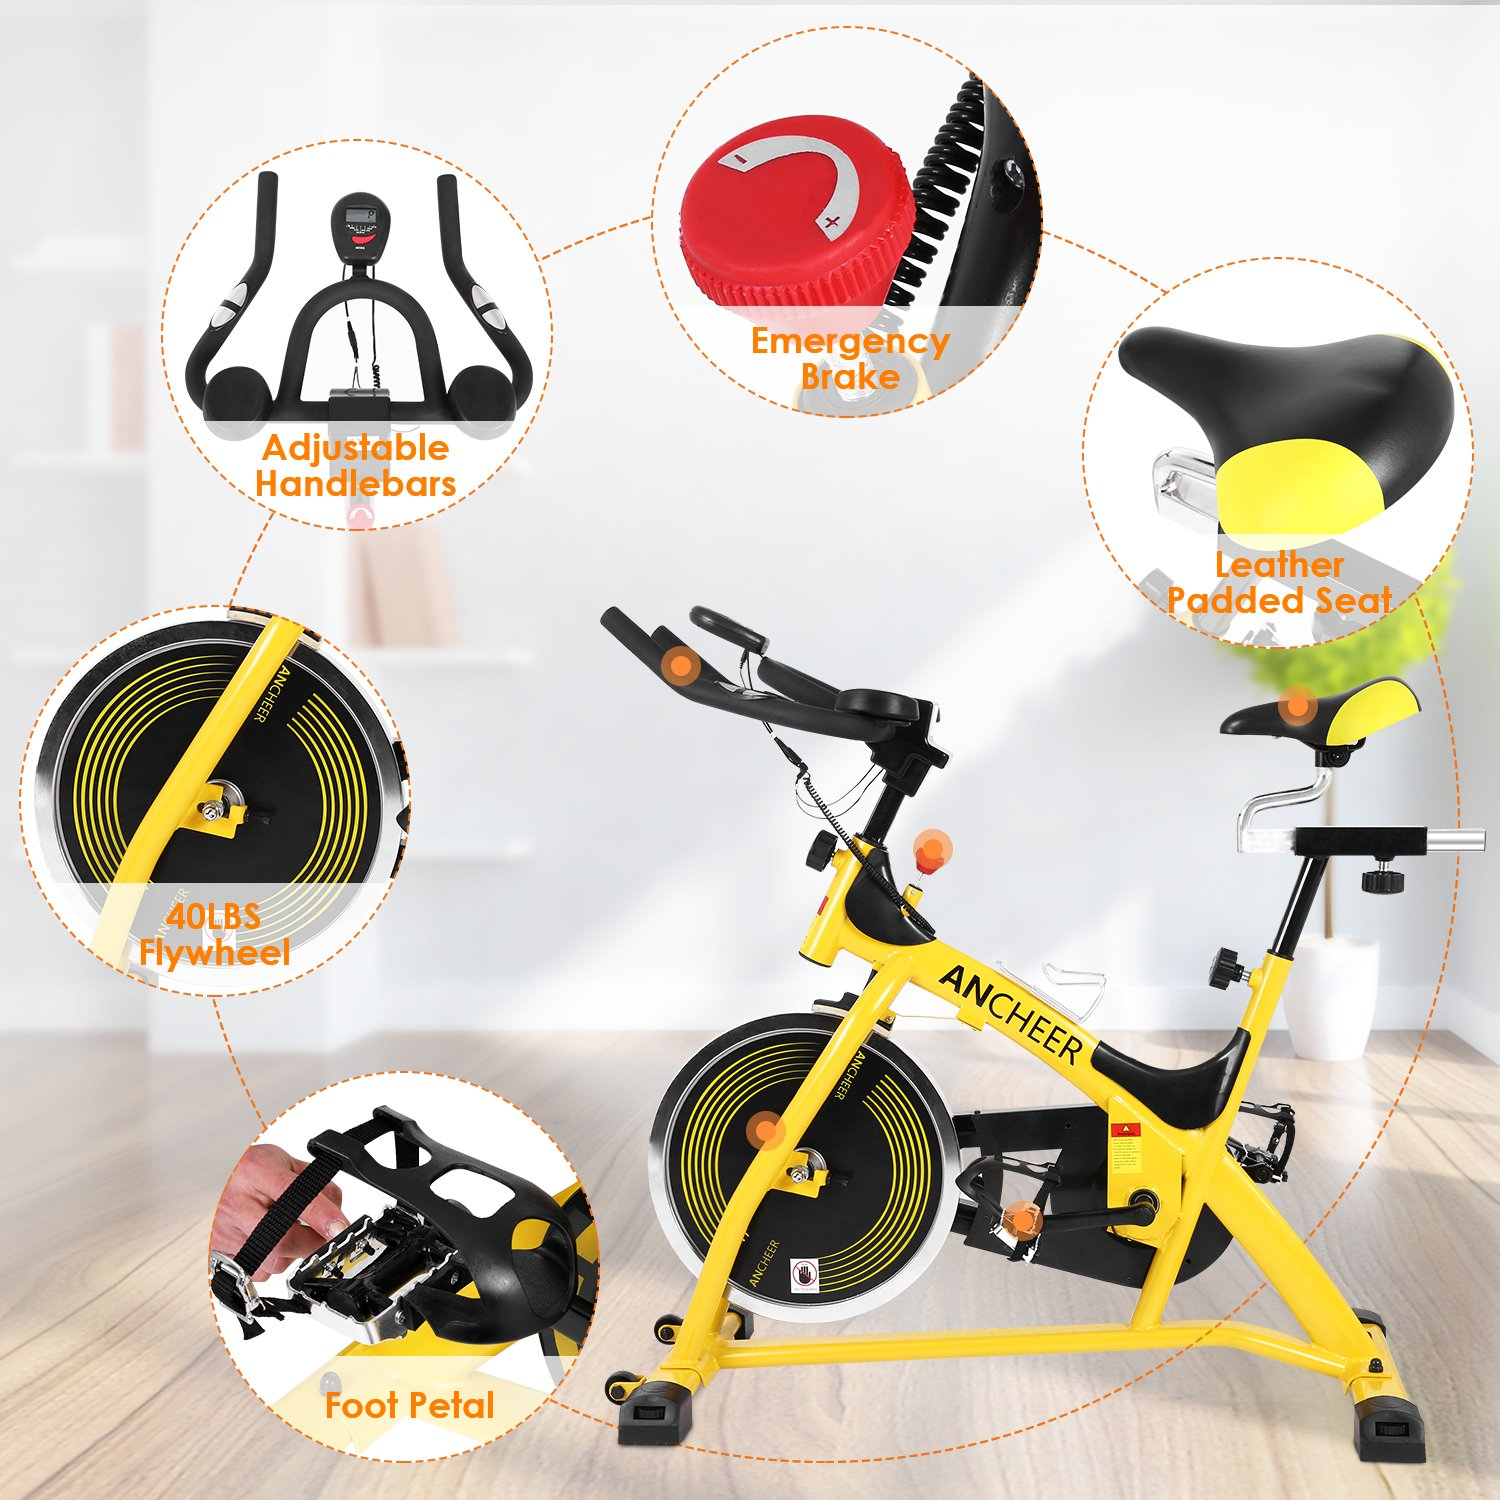 ANCHEER Stationary Bike, 40 LBS Flywheel Belt Drive Indoor Cycling Exercise Bike with Pulse, Elbow Tray (Model: ANCHEER-A5001) (Yellow) by ANCHEER (Image #6)